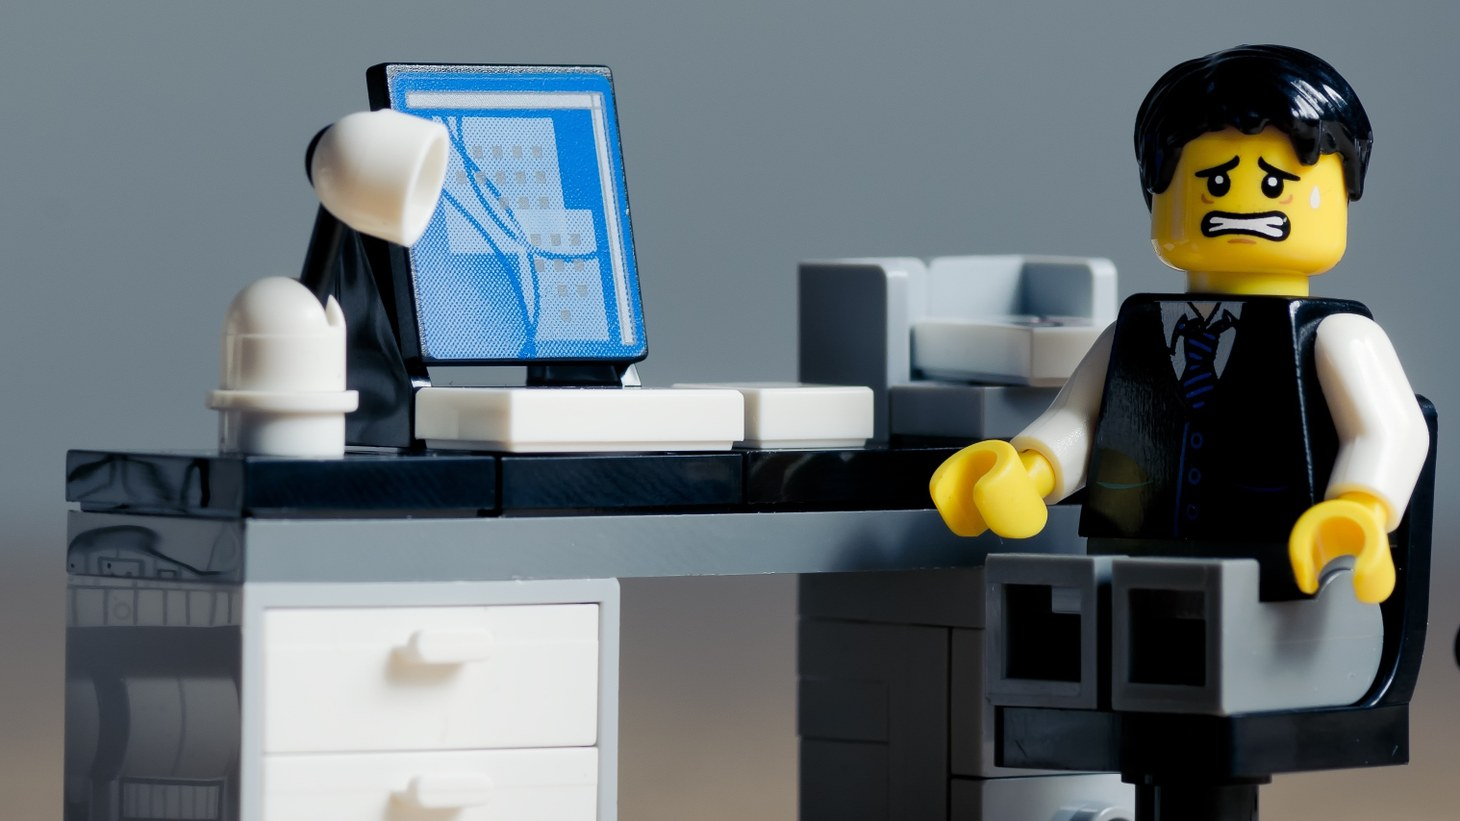 A LEGO of a stressed man at a computer.